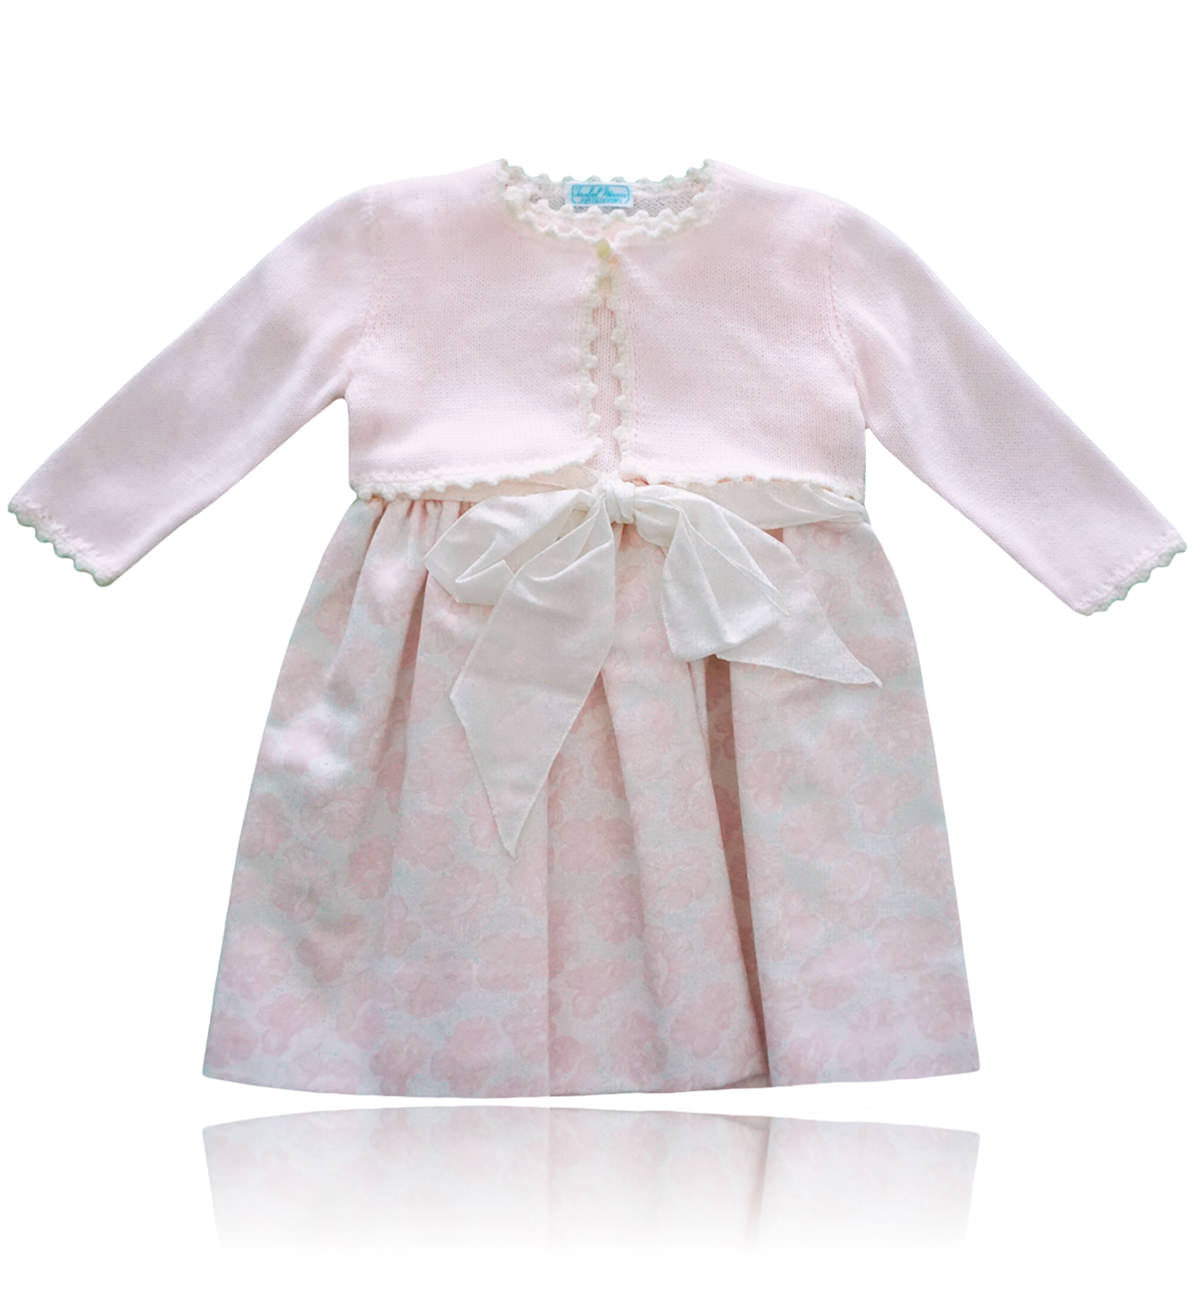 Spanish baby clothes | baby Dress | Pink & white bolero cardigan and dress set |babymaC  - 1